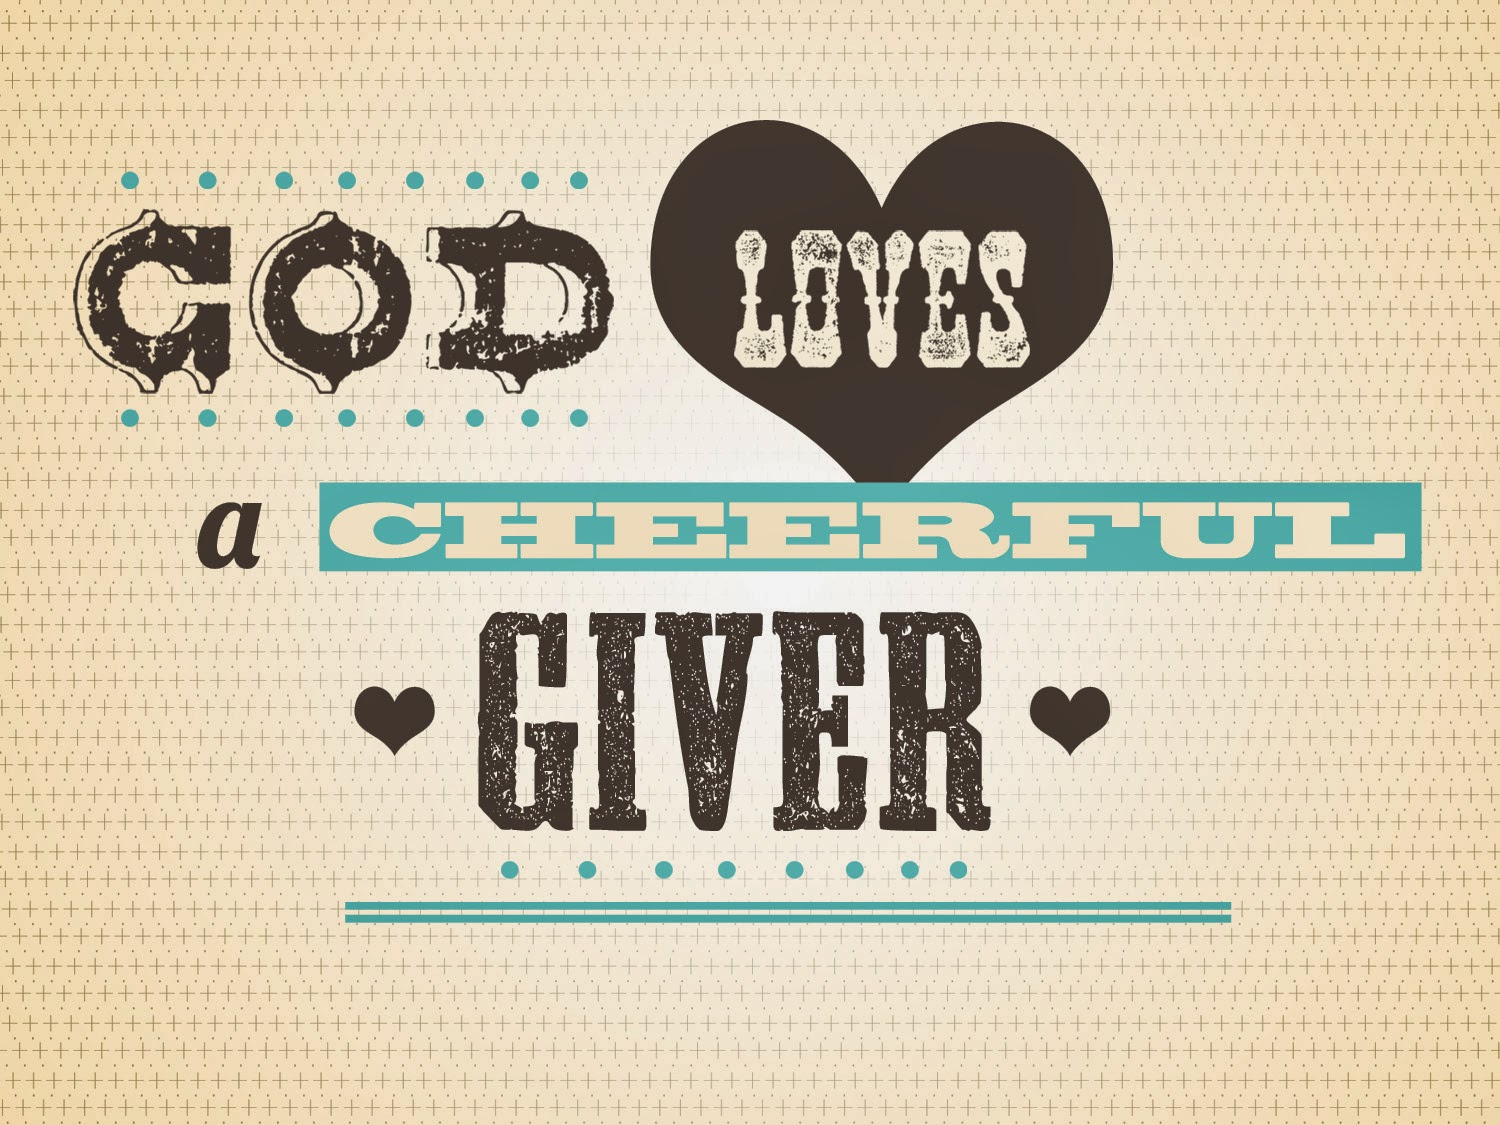 god loves cheerful givers 2 corinthians 9:6-7 english standard version (esv) the cheerful giver 6 the point is this: whoever sows sparingly will also reap sparingly, and whoever sows bountifully [] will also reap bountifully 7 each one must give as he has decided in his heart, not reluctantly or under compulsion, for god loves a cheerful giver.